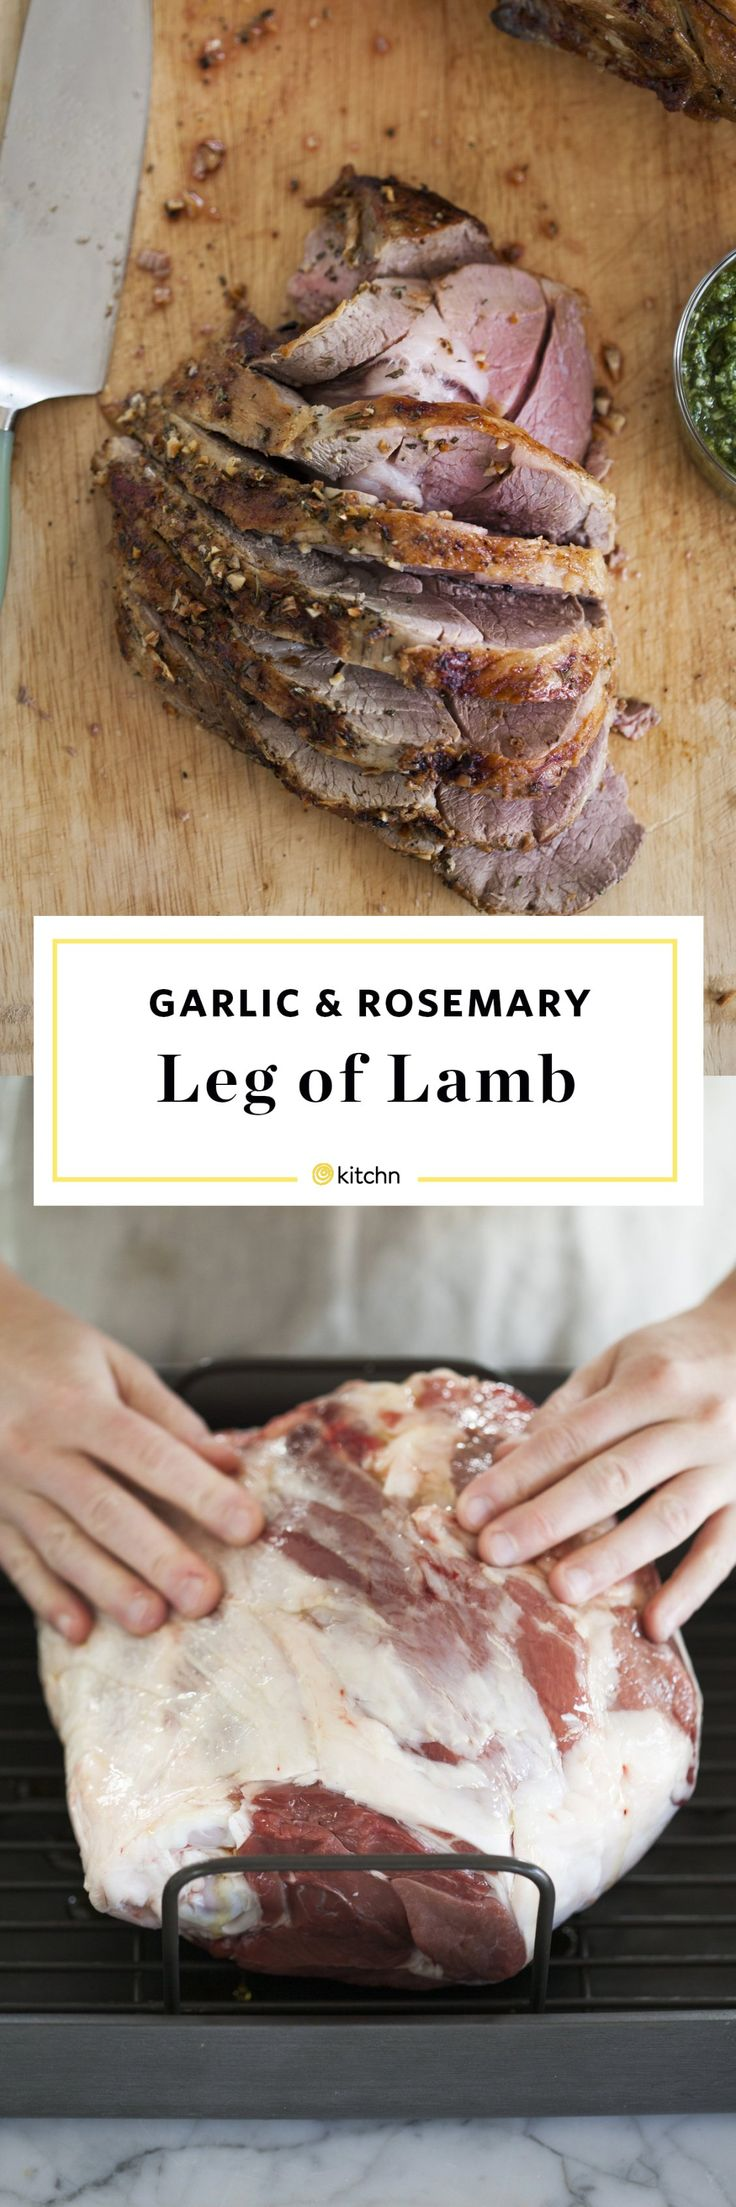 How To Roast a Leg of Lamb. This garlic and rosemary leg of lamb roast recipe is perfect for cold weather or dinners for holidays like easter, christmas, or passover. Buying bone in is important, boneless doesn't have as much flavor. We love it roasted in ovens!